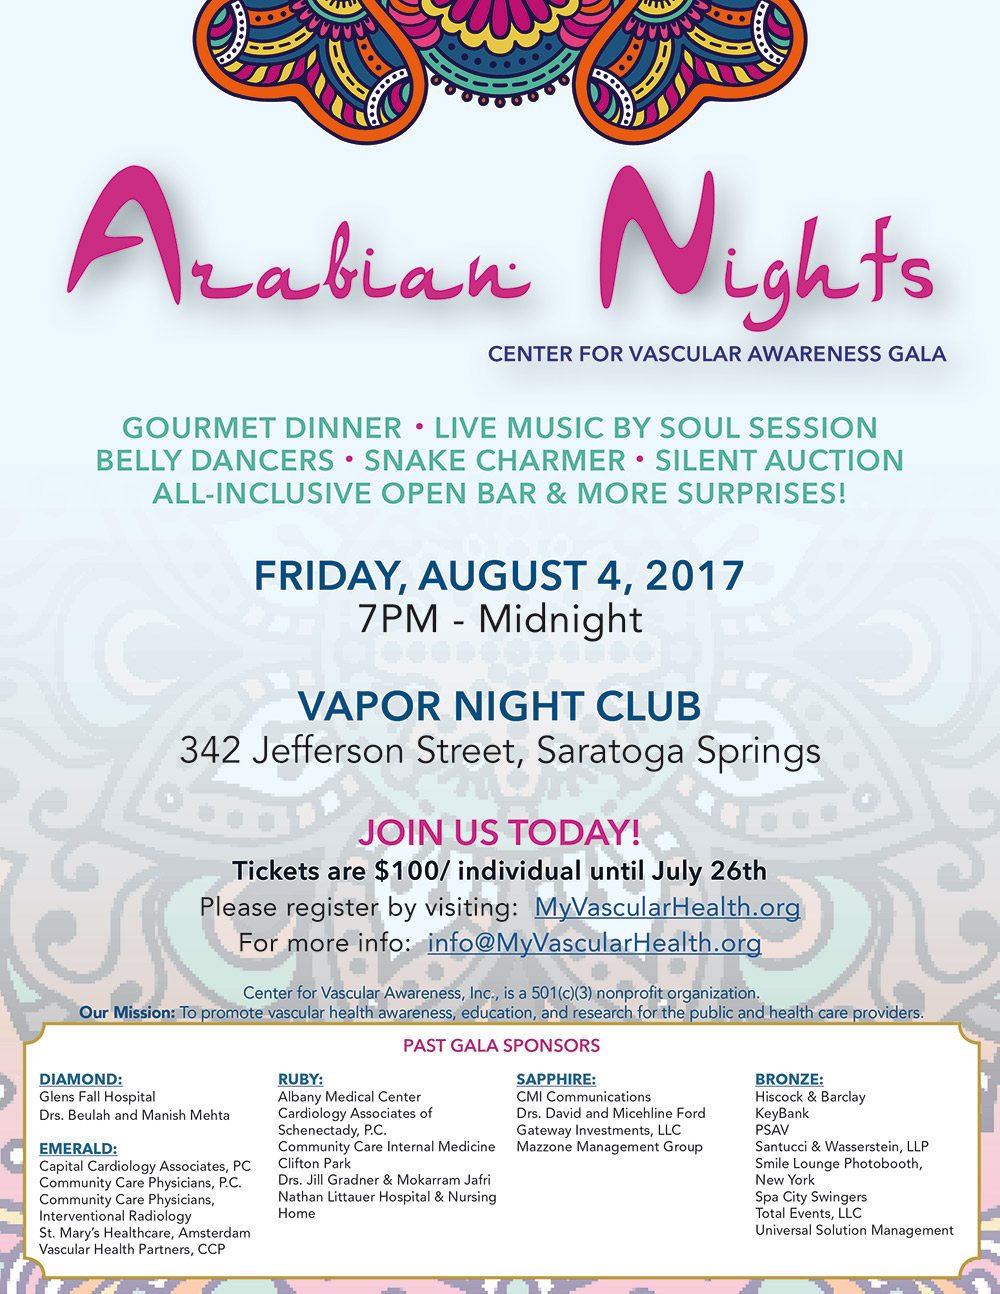 Center for Vascular Awareness Annual Gala- August 4, 2017